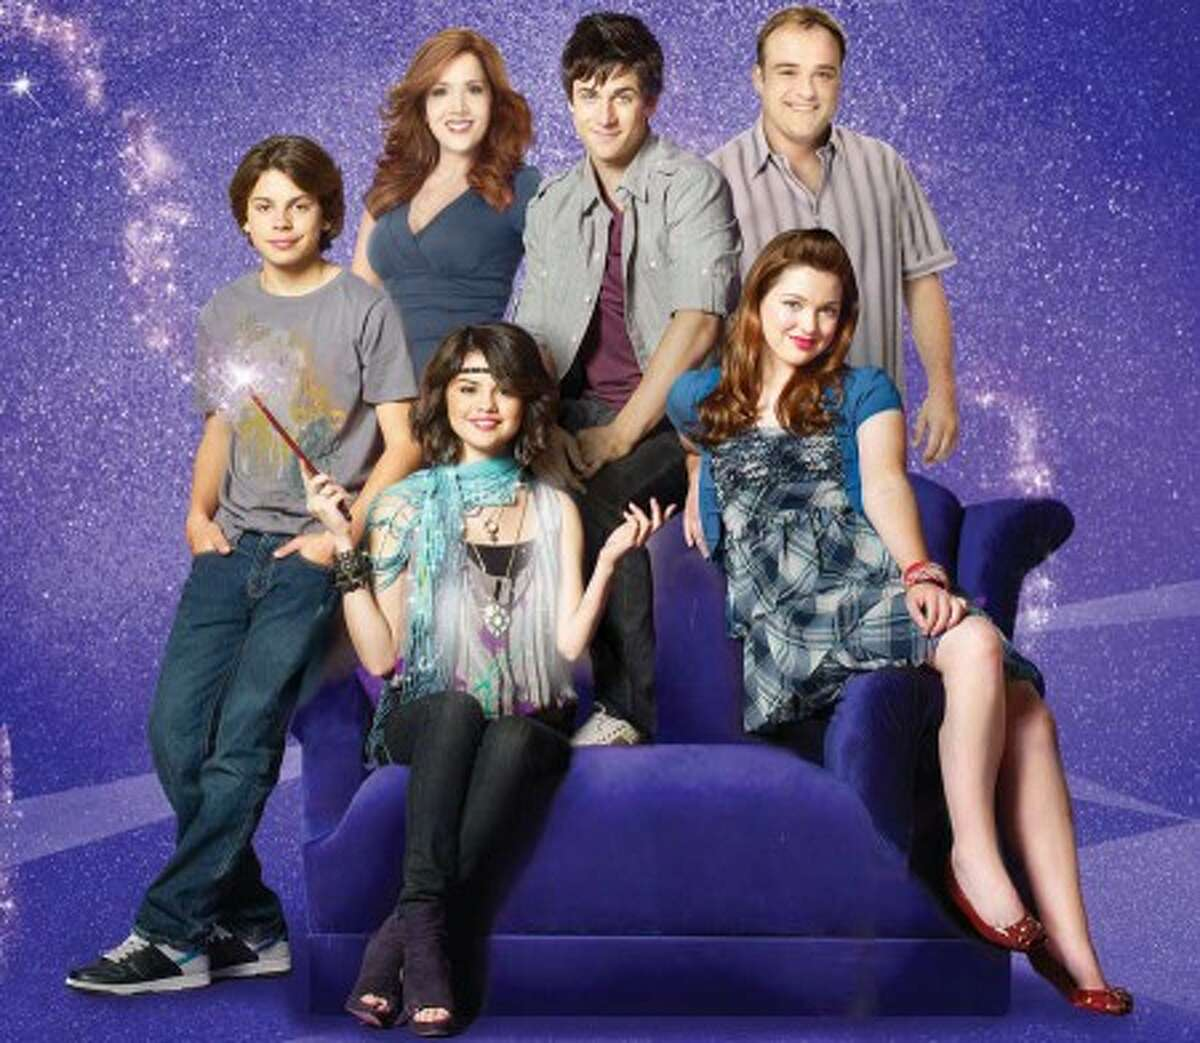 """Disney Channel original movie based on the series """"Wizards of Waverly Place"""" stars David DeLuise as Jerry Russo, Jake T. Austin as Max Russo, Selena Gomez as Alex Russo, David Henrie as Justin Russo and Maria Canals-Barrera as Theresa Russo. (Bob D''Amico/Disney Channel/MCT)"""